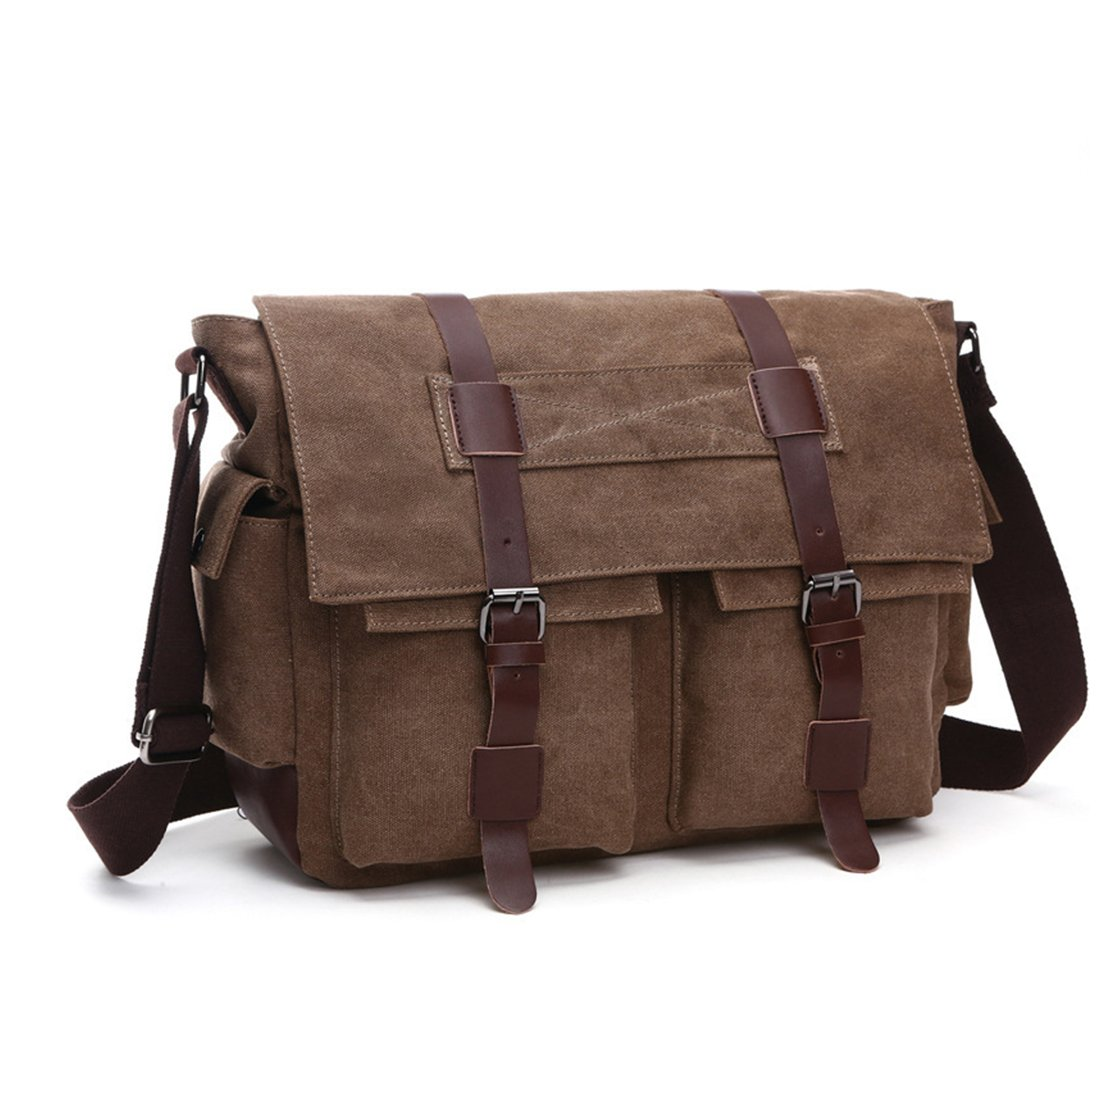 Military Mens Messenger Bag Canvas Leather Laptop Briefcase Large Cross Body Travel Shoulder Bags School Bag Fits 15.6 inch Laptop (Coffee )